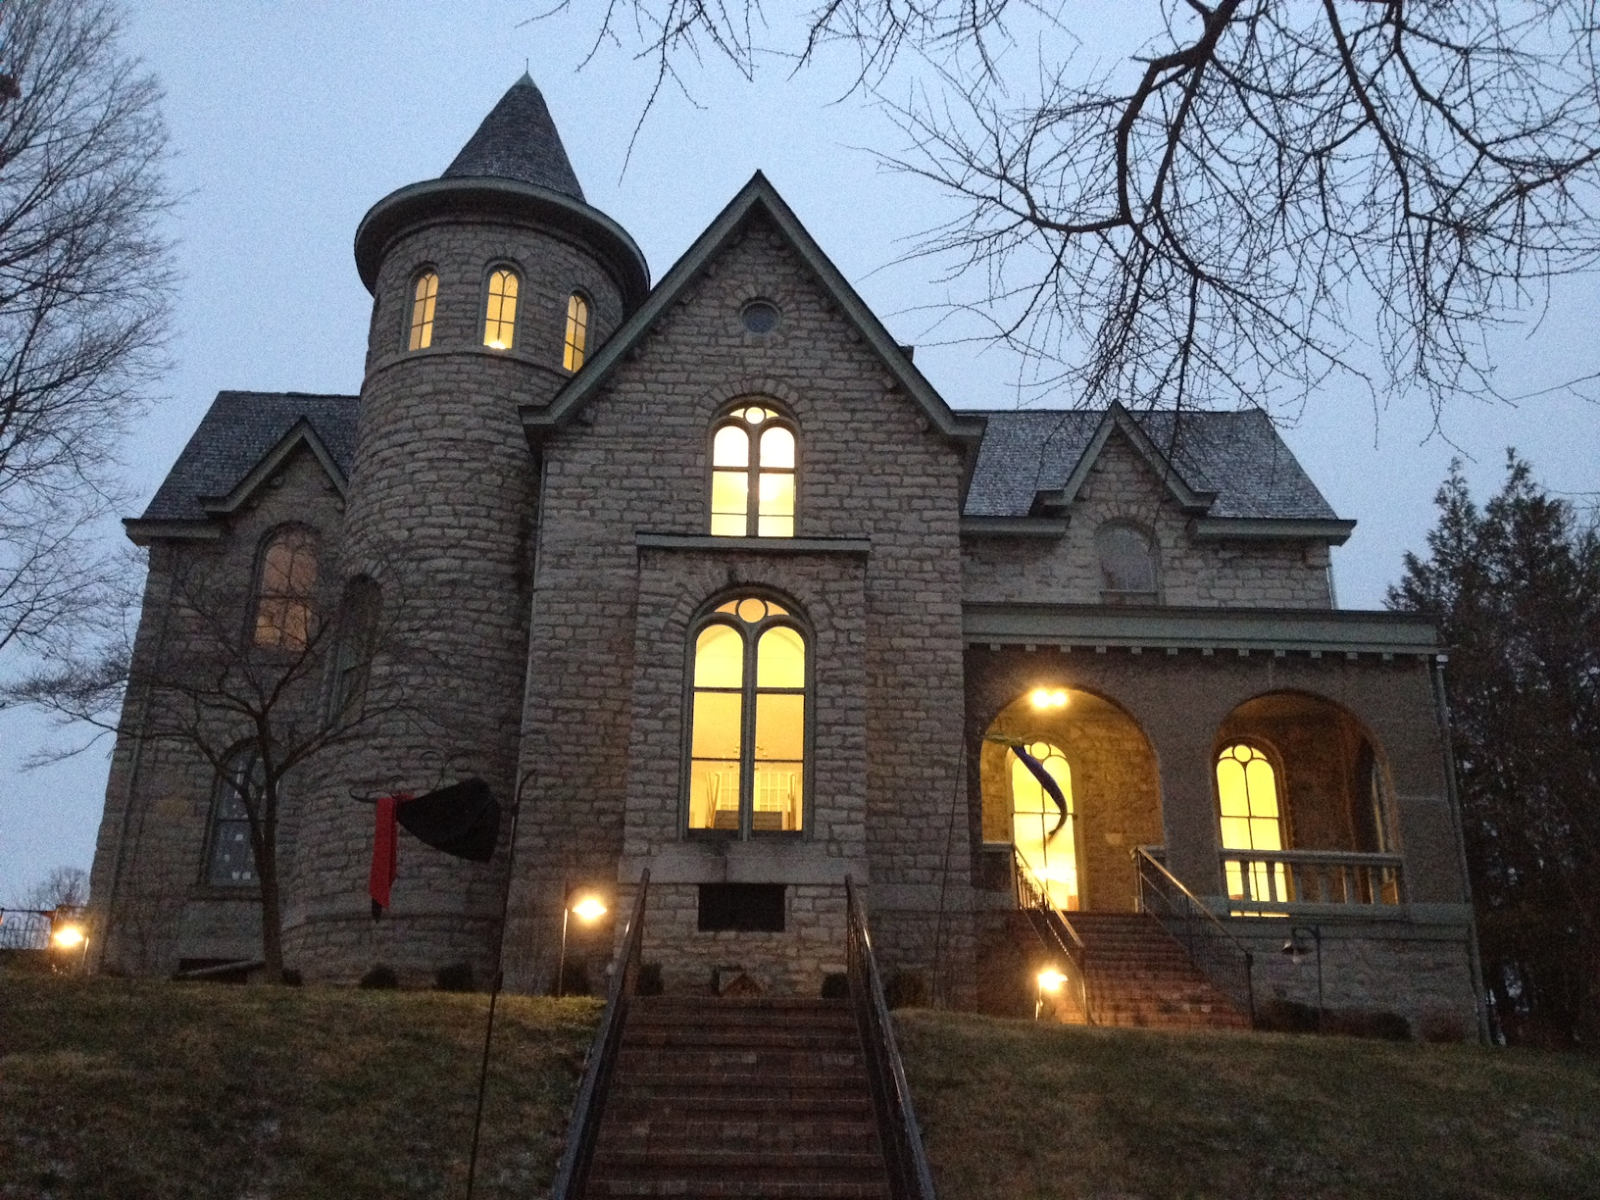 The castle-like building that houses the Delaware County Cultural Arts Center